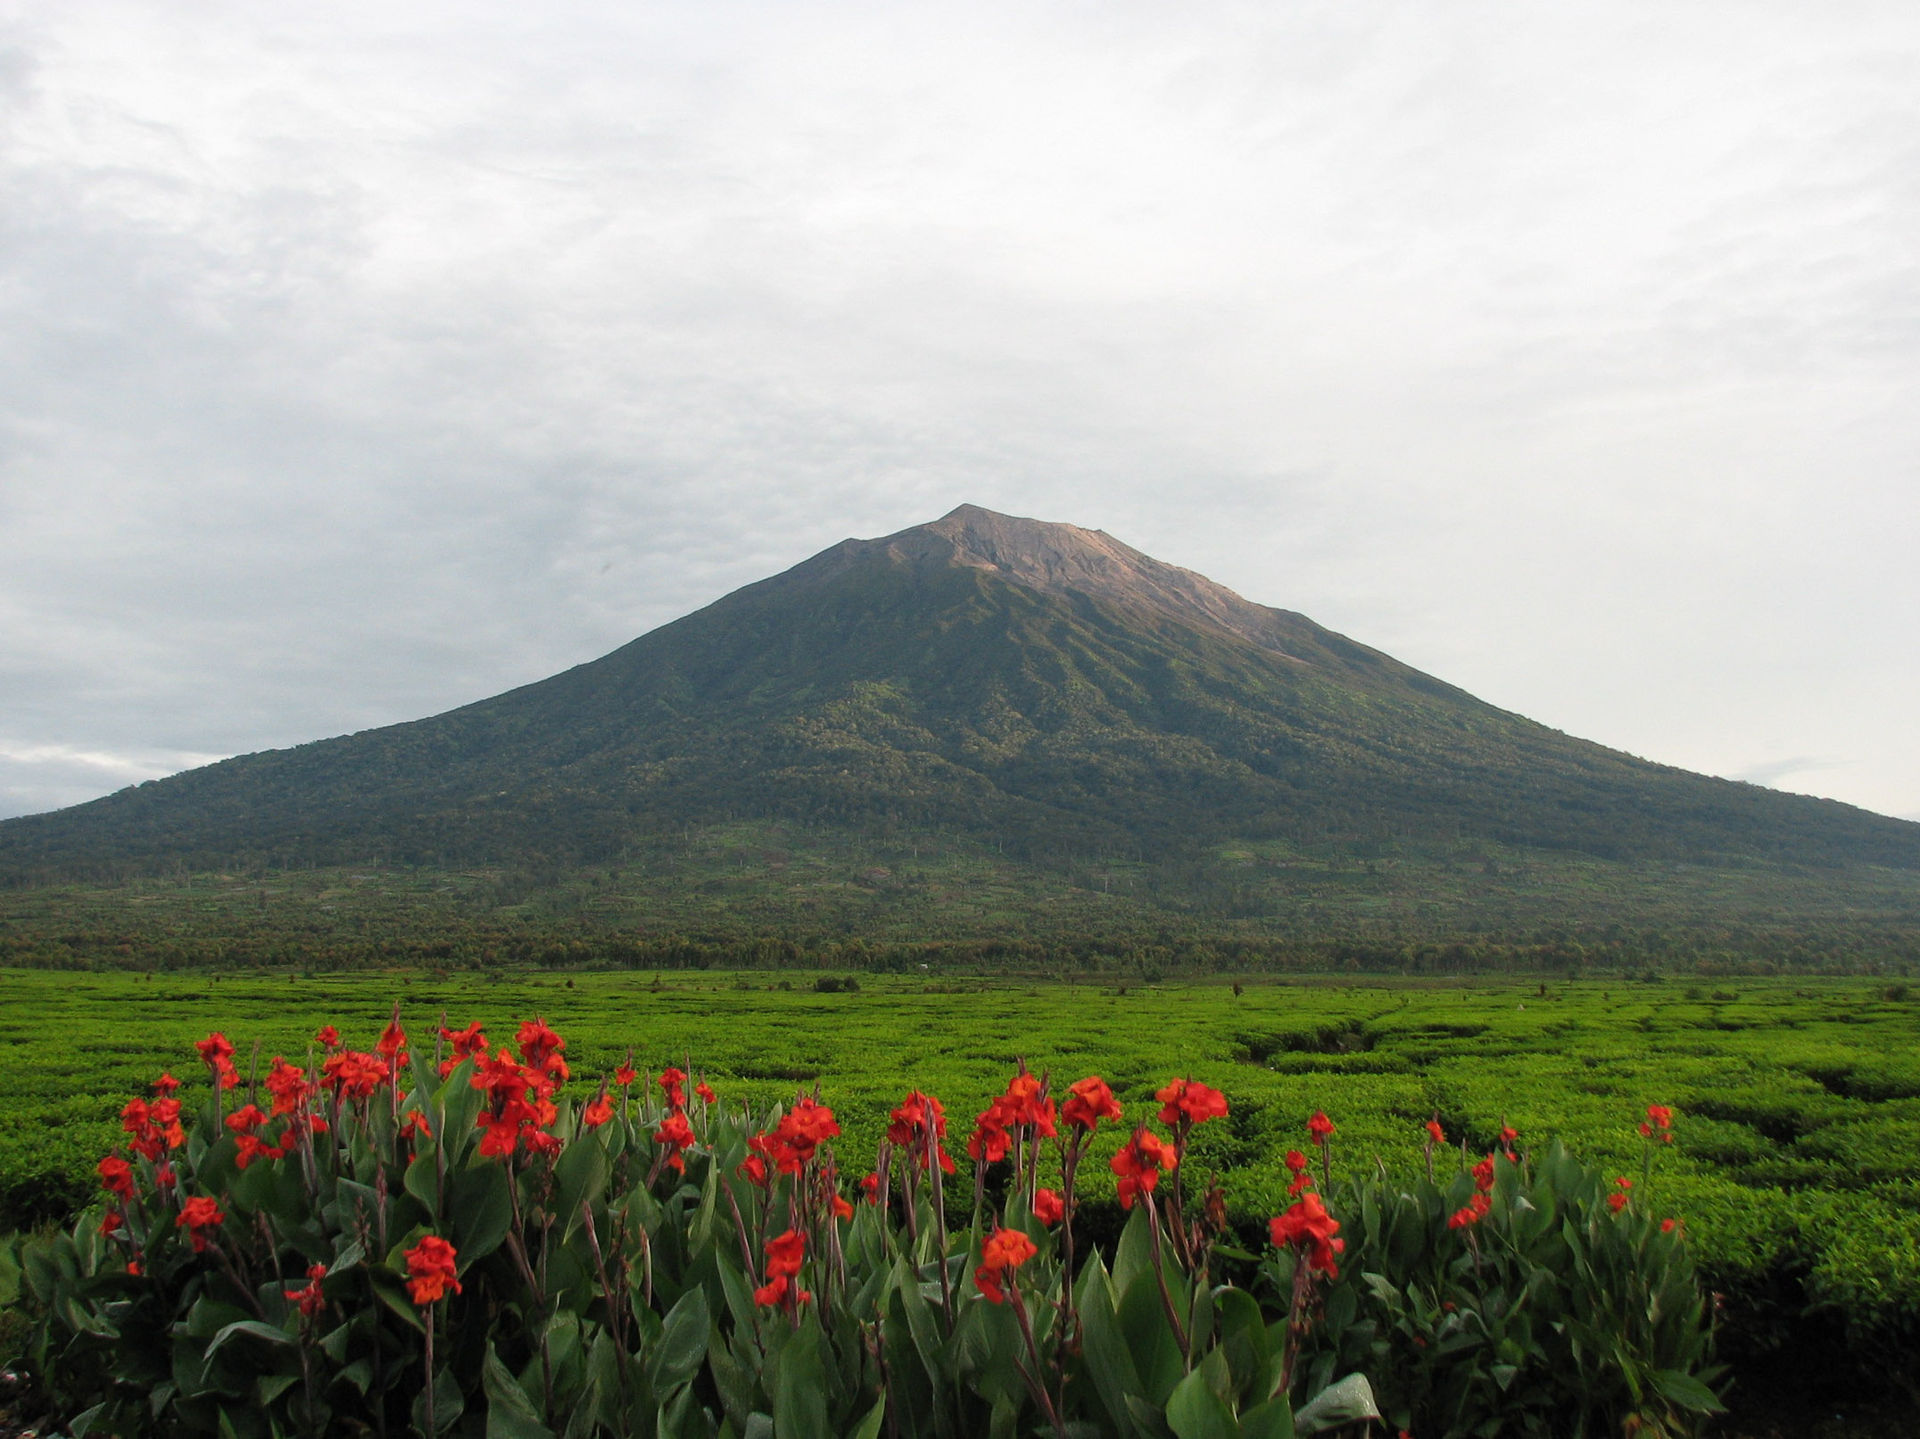 Gunung Kerinci   By Uprising - Own work, CC BY-SA 3.0, https://commons.wikimedia.org/w/index.php?curid=26995055